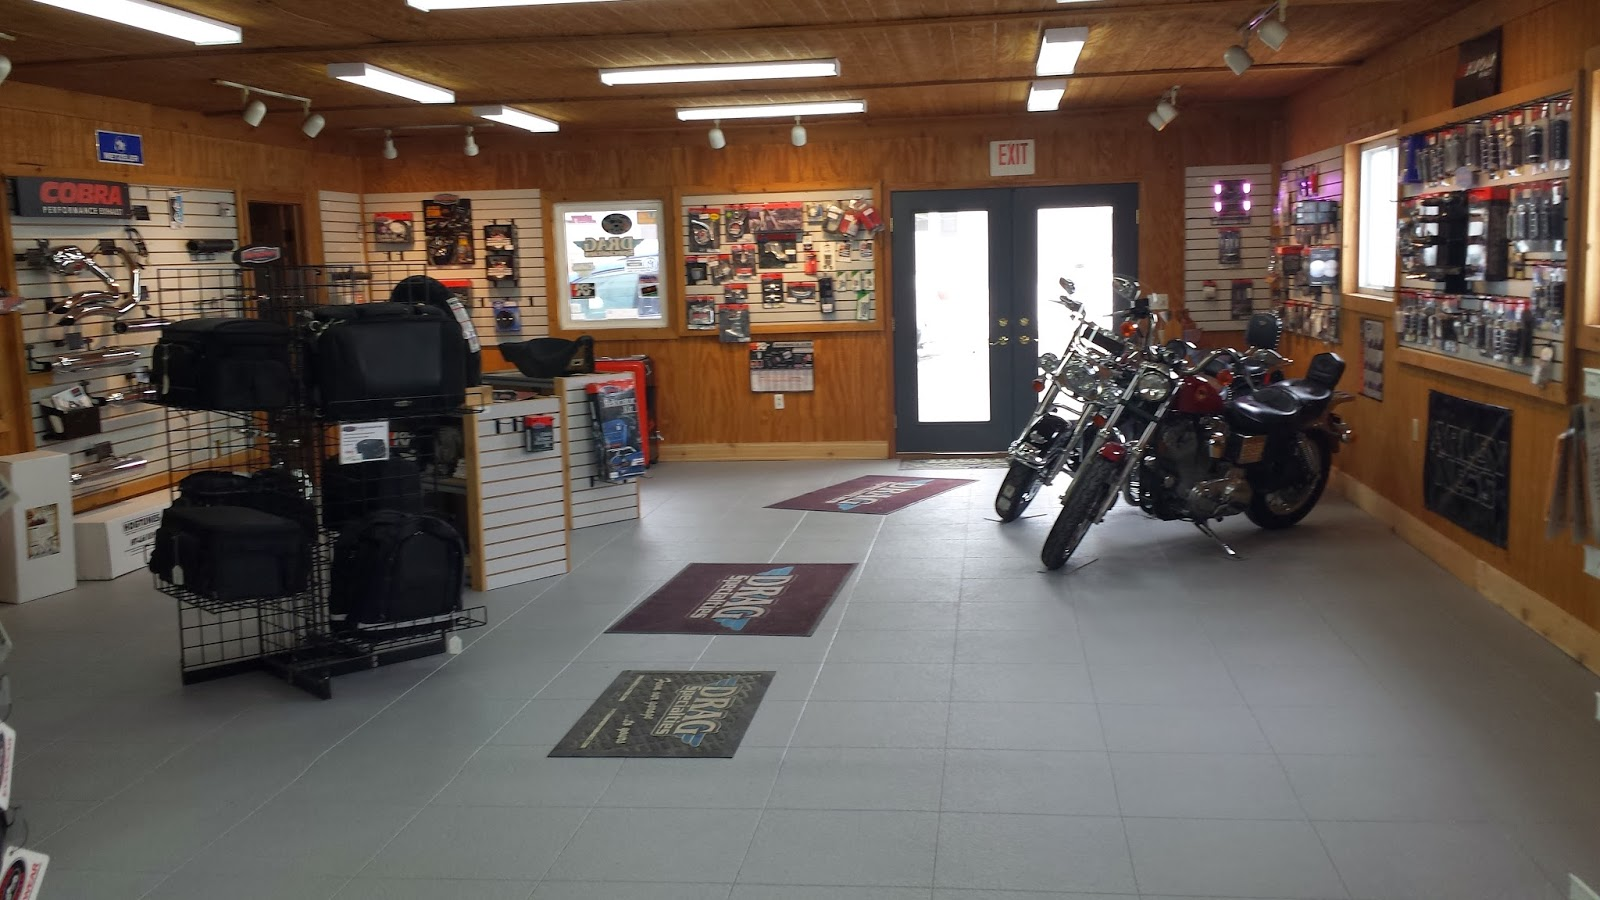 Rubber floor mats for basement -  This Was My First Experience With This Style Of Flooring And With Great Mats I Can Say With Great Confidence That I Will Be Using Both Again